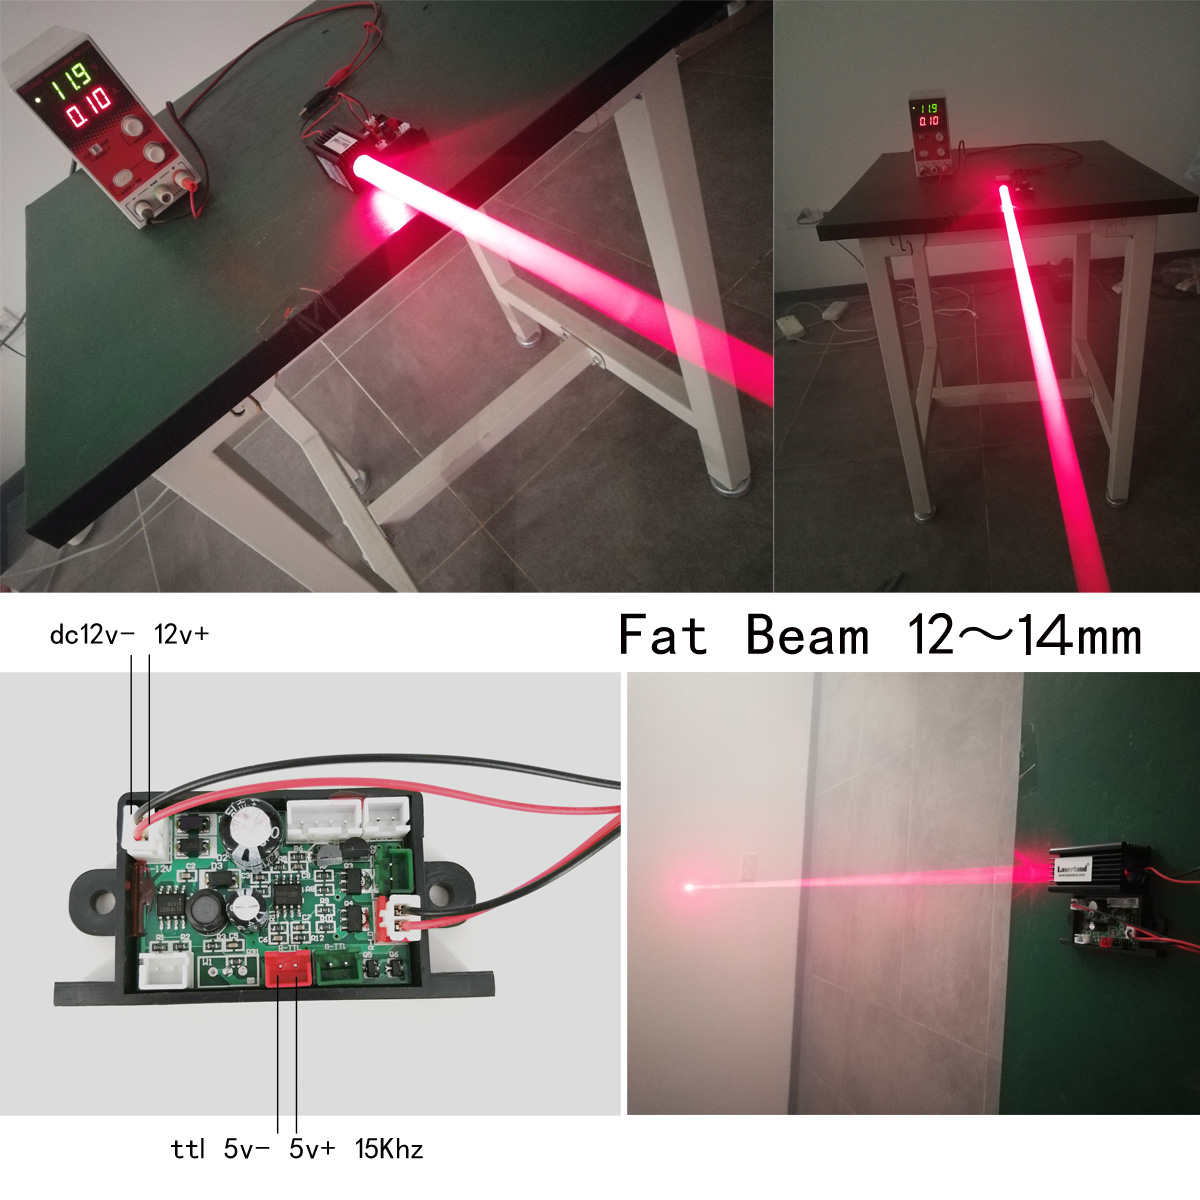 Fat Beam 200mW 650nm Red Dot Focusable Laser Diode Module TTL